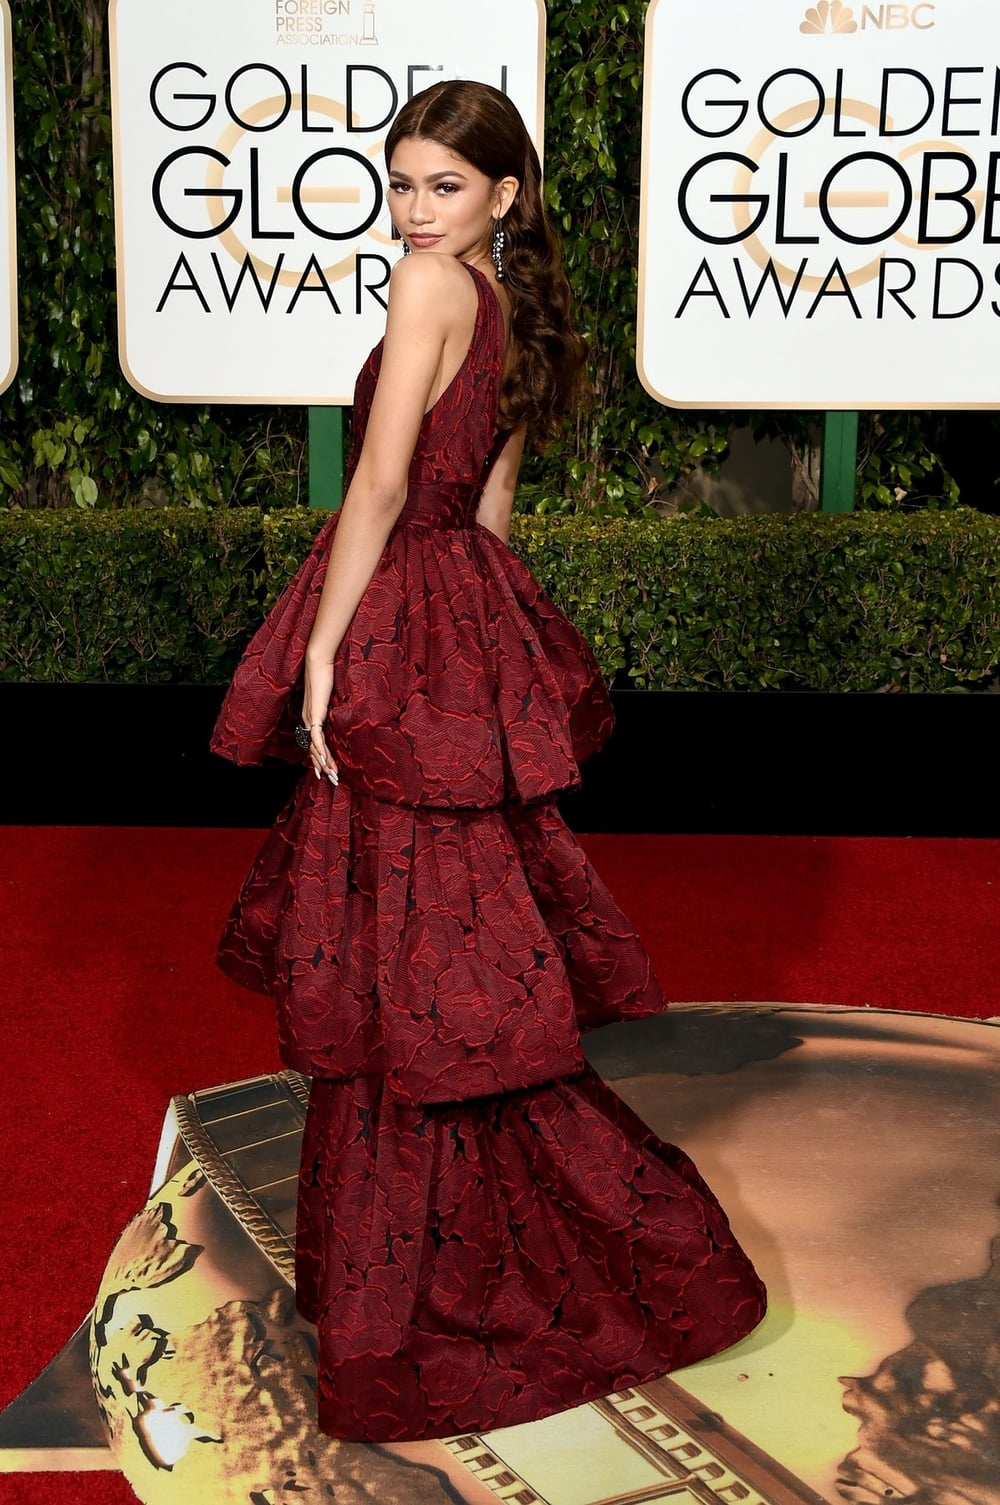 zendaya-golden-globes-2016.jpeg